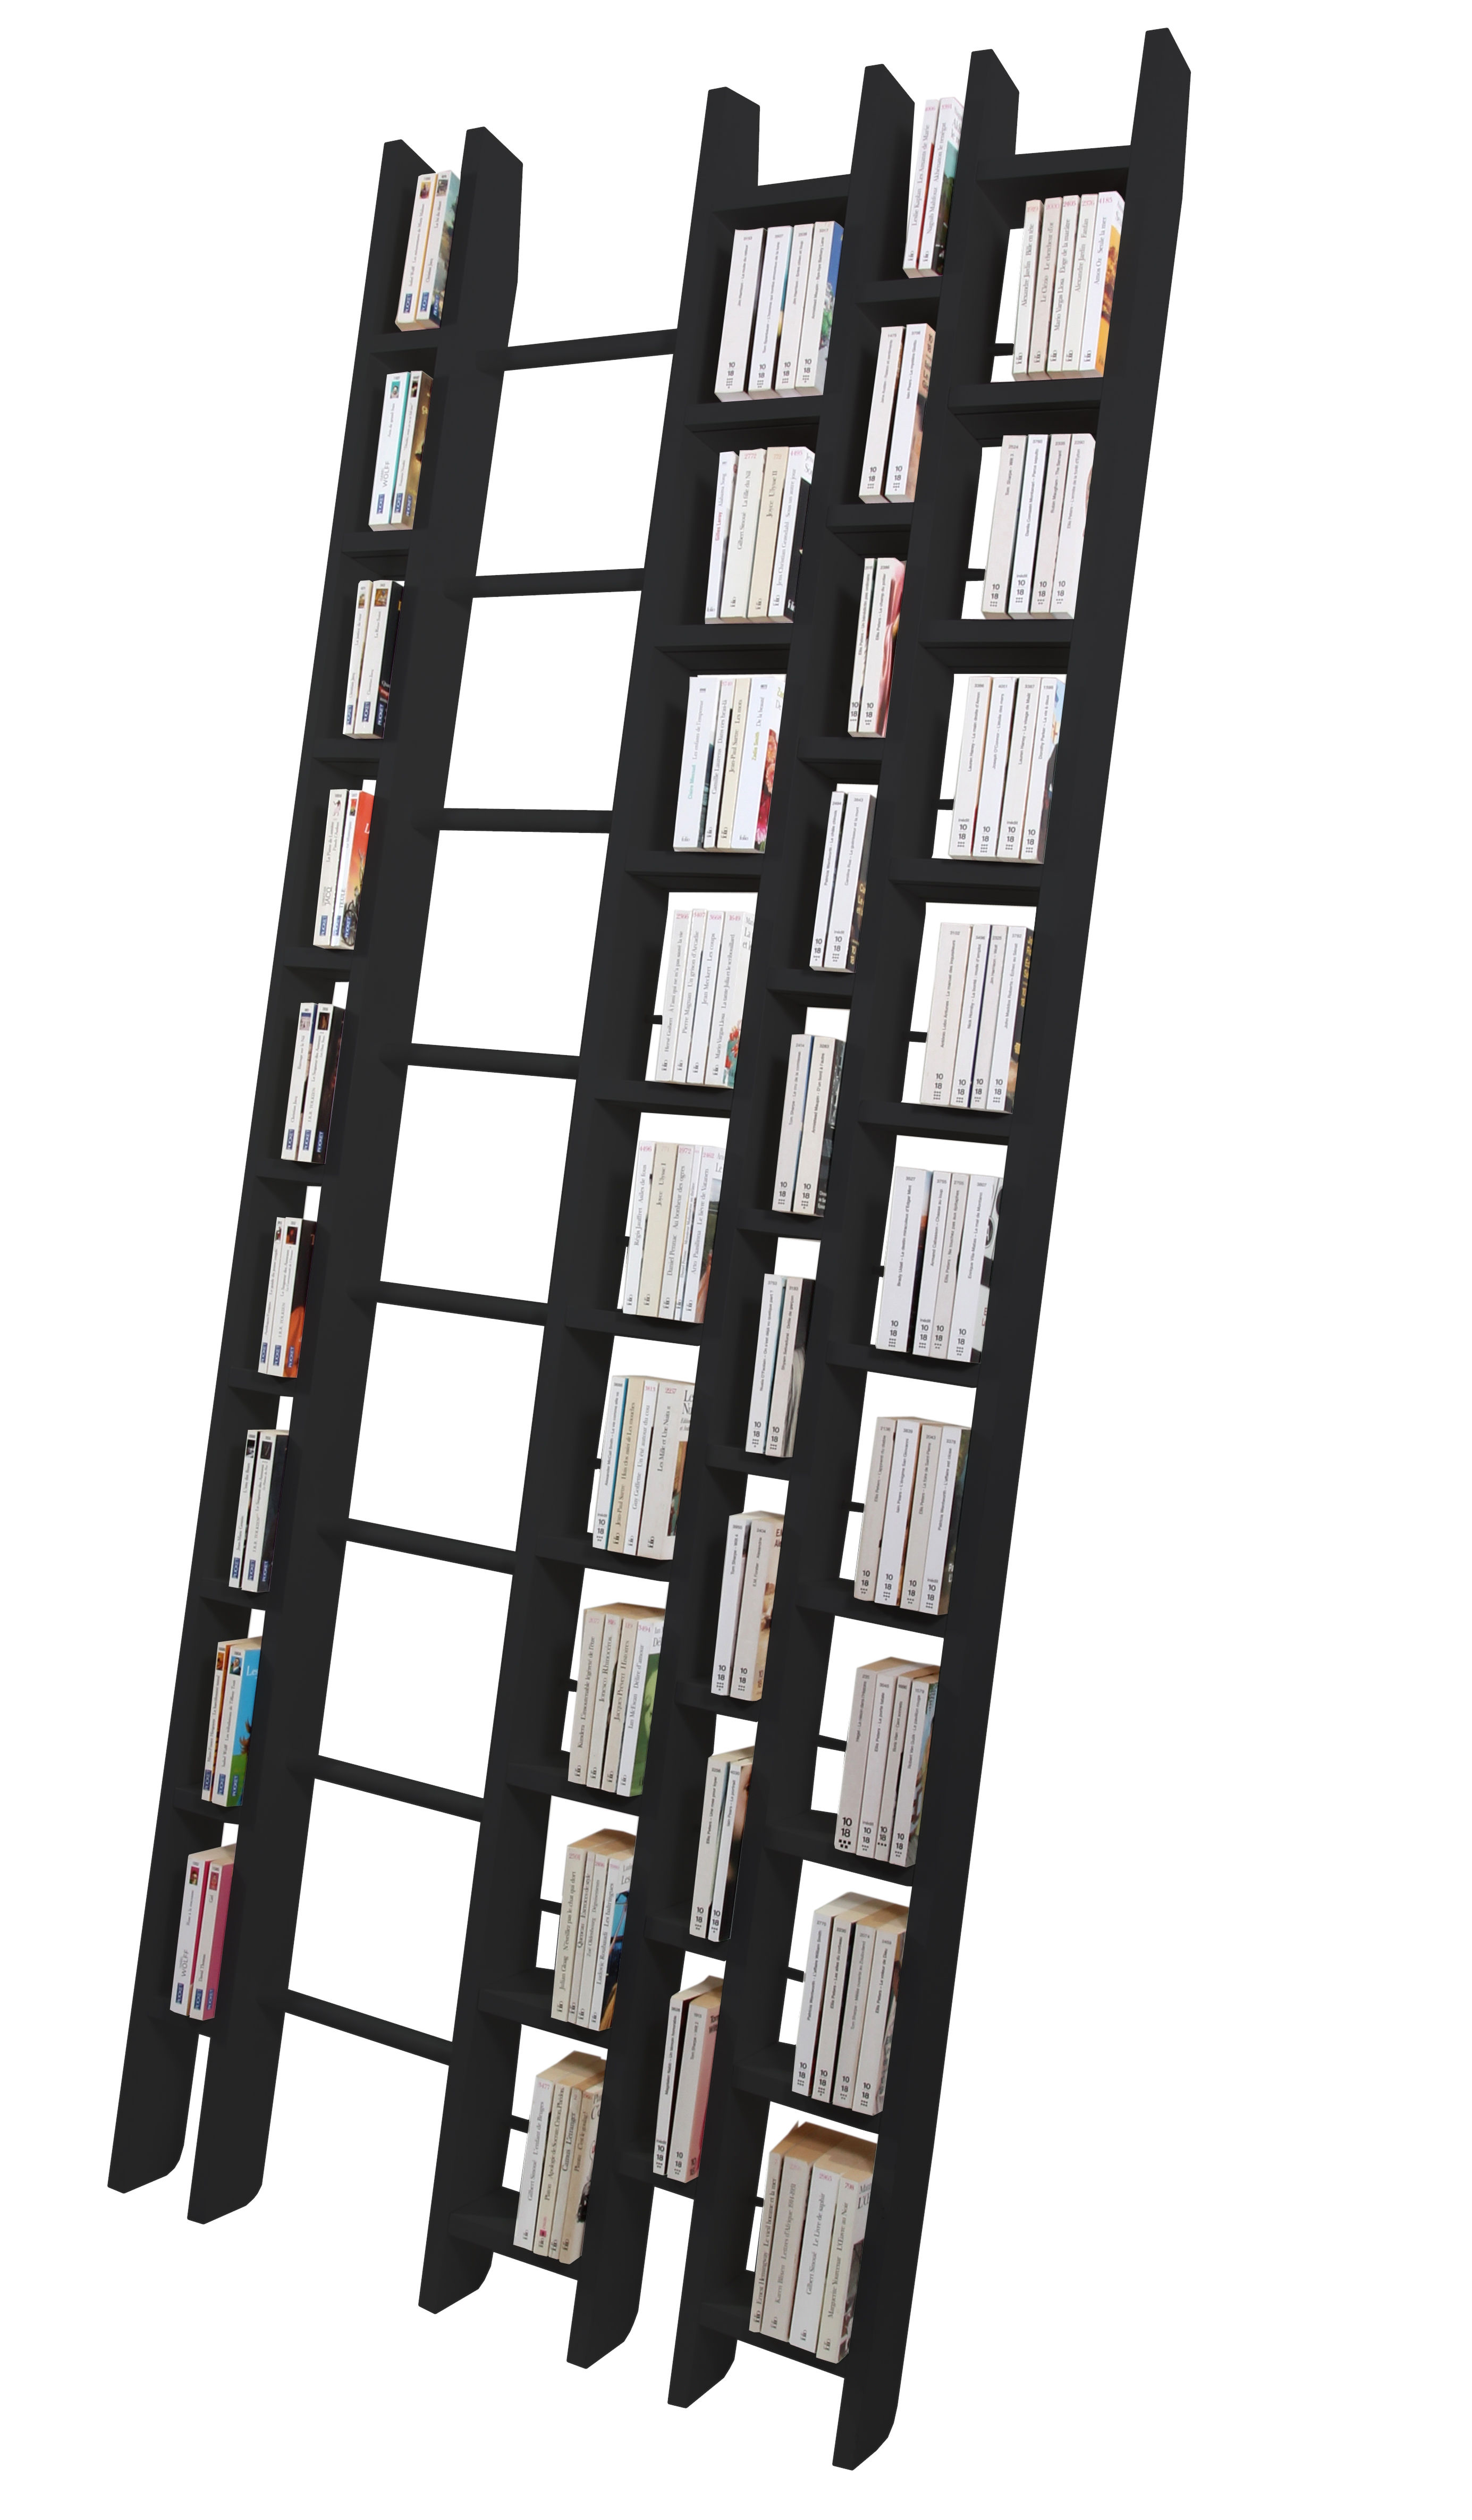 Furniture - Bookcases & Bookshelves - Hô + Bookcase - W 96 cm by La Corbeille - Black - Lacquered solid beech